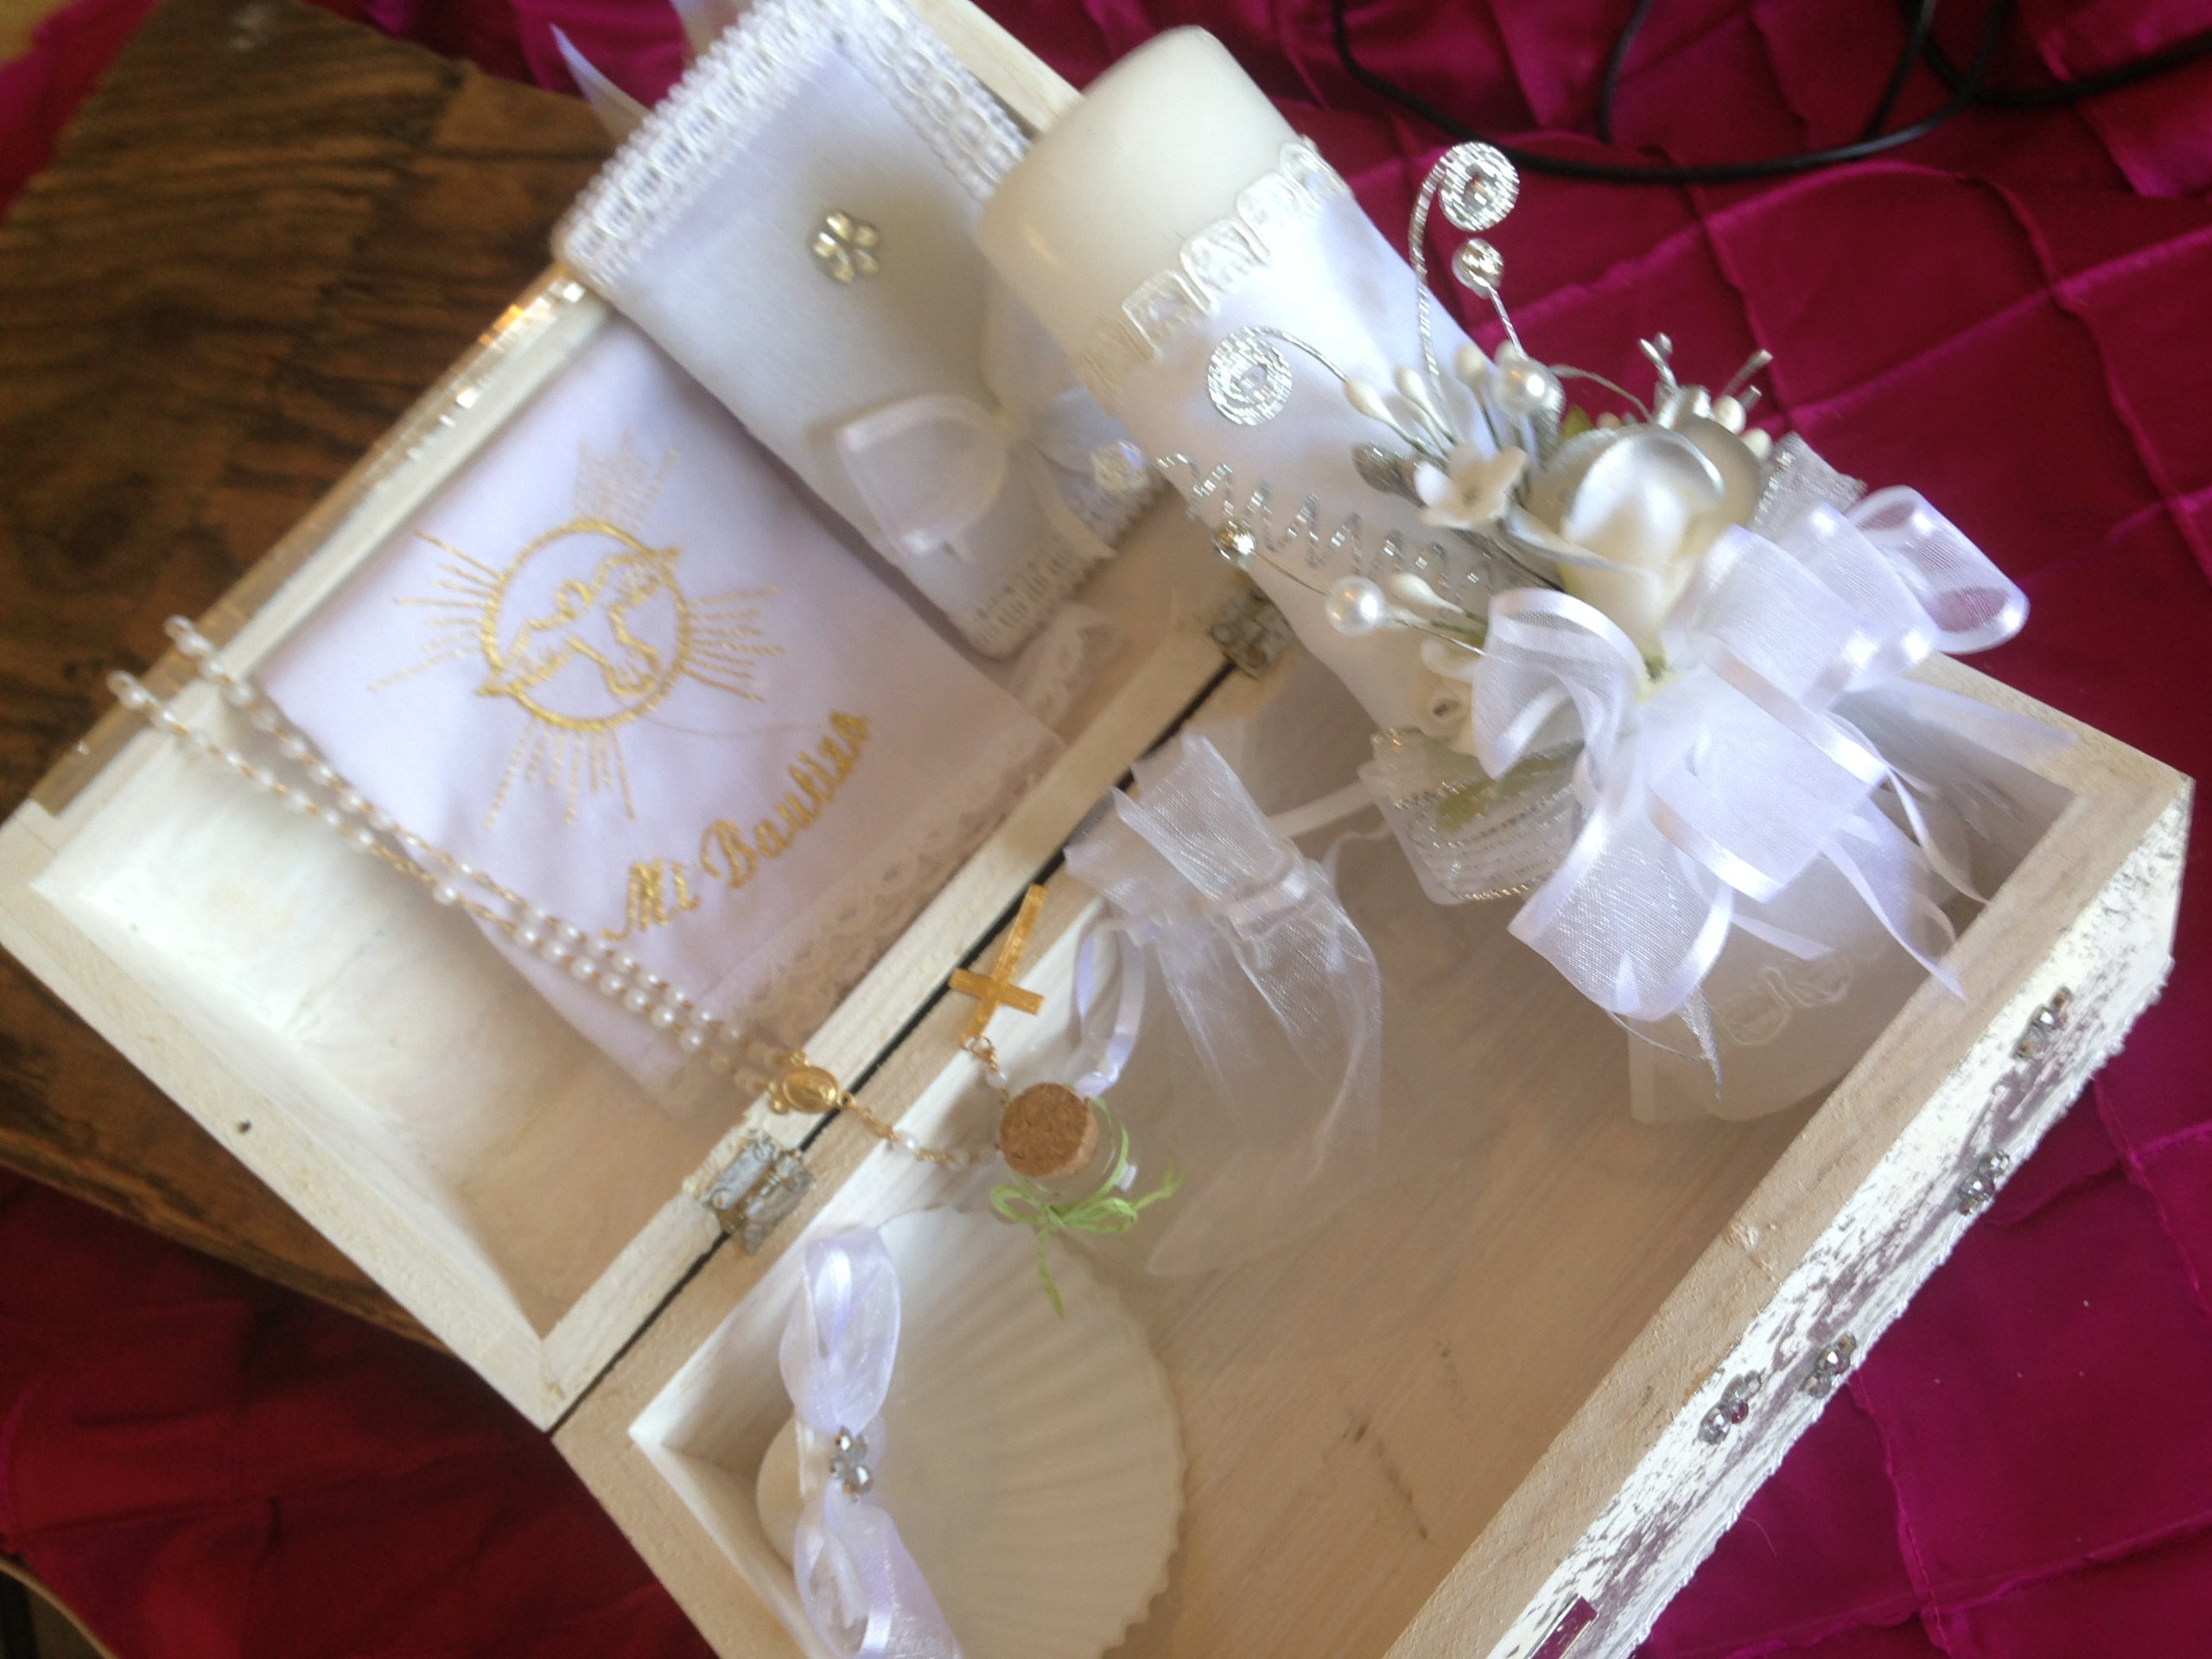 Baptism Candle Set Off White Hand Made Wooden Chest with Virgen De Guadalupe/ Vela Para Bautizo/vela Para Bautismo by hand made (Image #2)